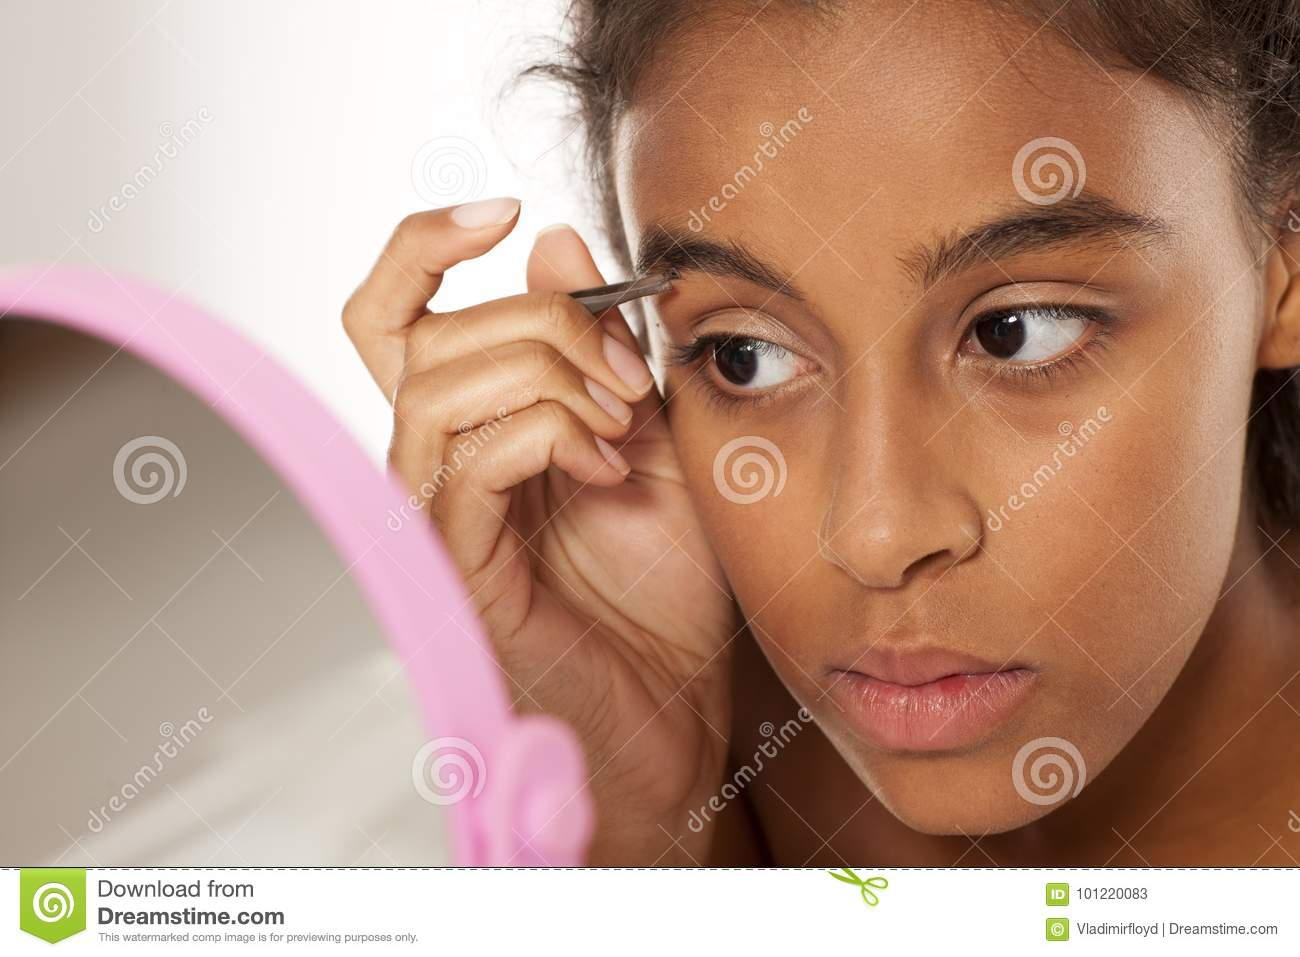 Eyebrows Plucking Stock Image Image Of Pull Face Background